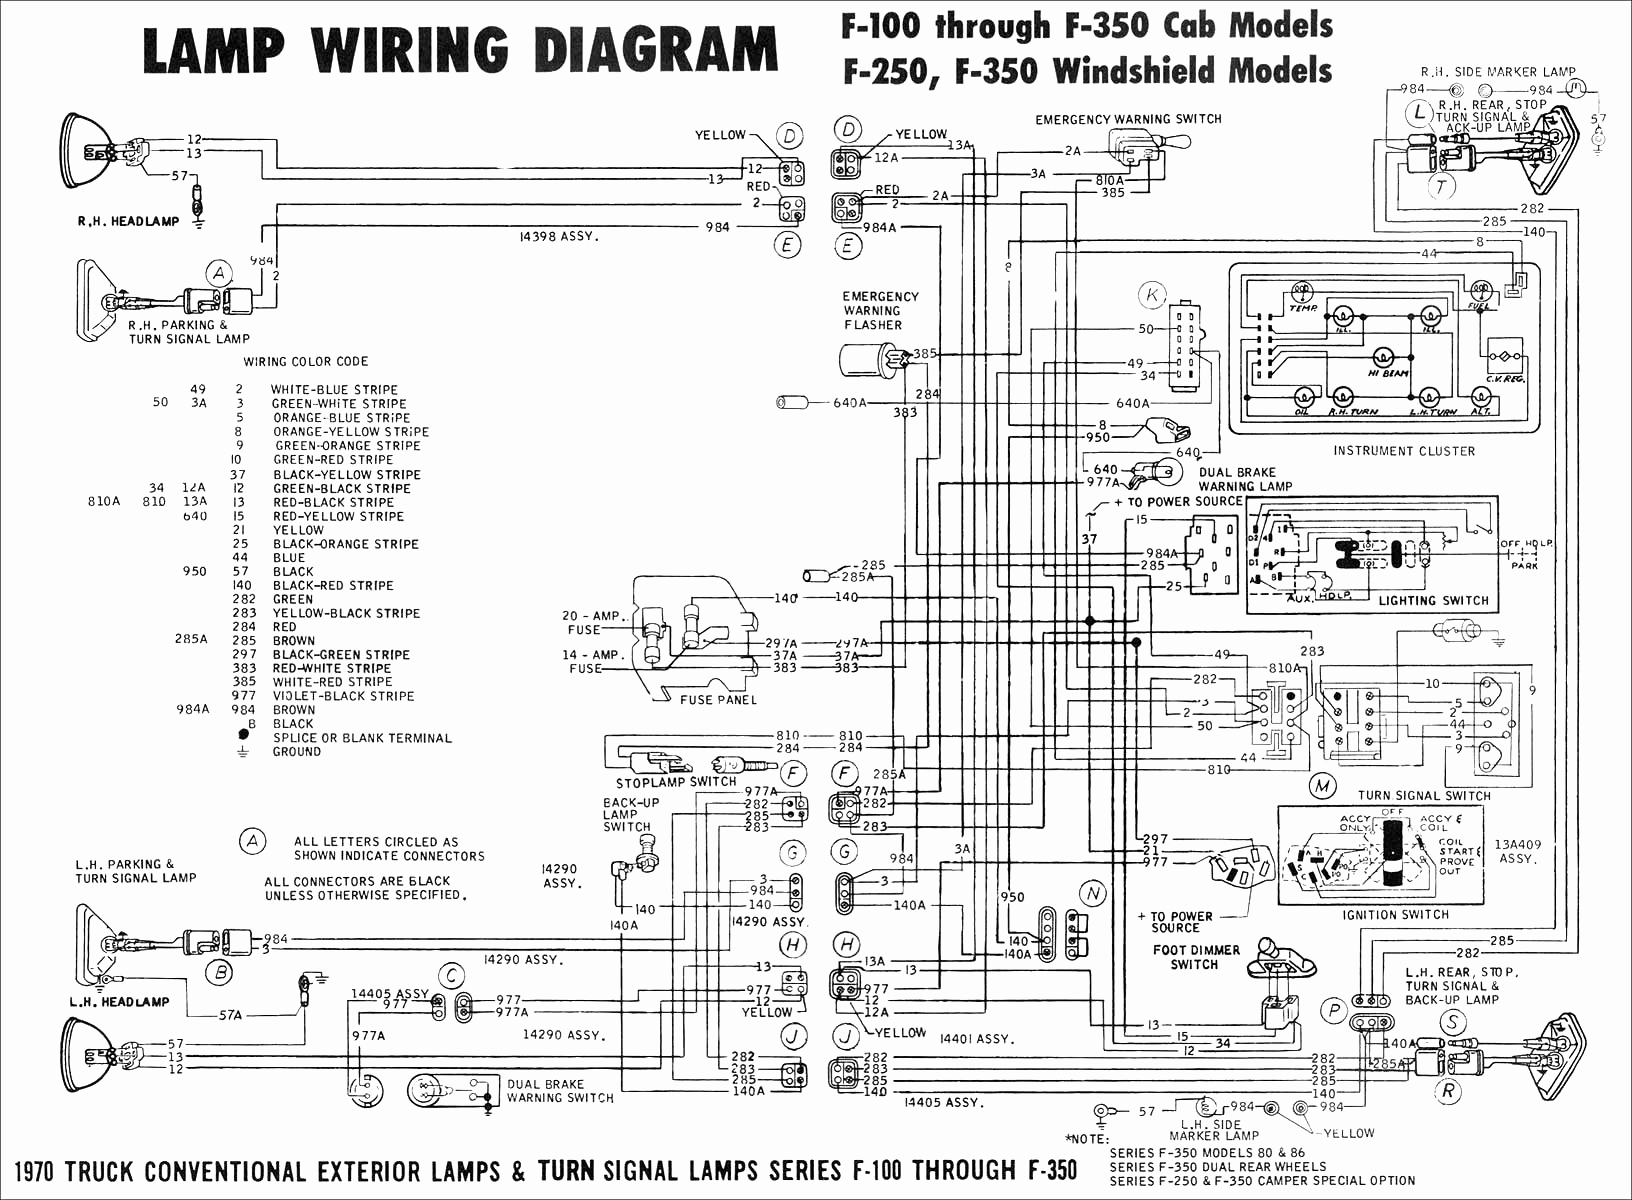 nutone intercom wiring diagram Collection-Full Size of Wiring Diagram Nutone Doorbell Wiring Diagram Beautiful 2008 Ford F250 Wiring Diagram 4-p